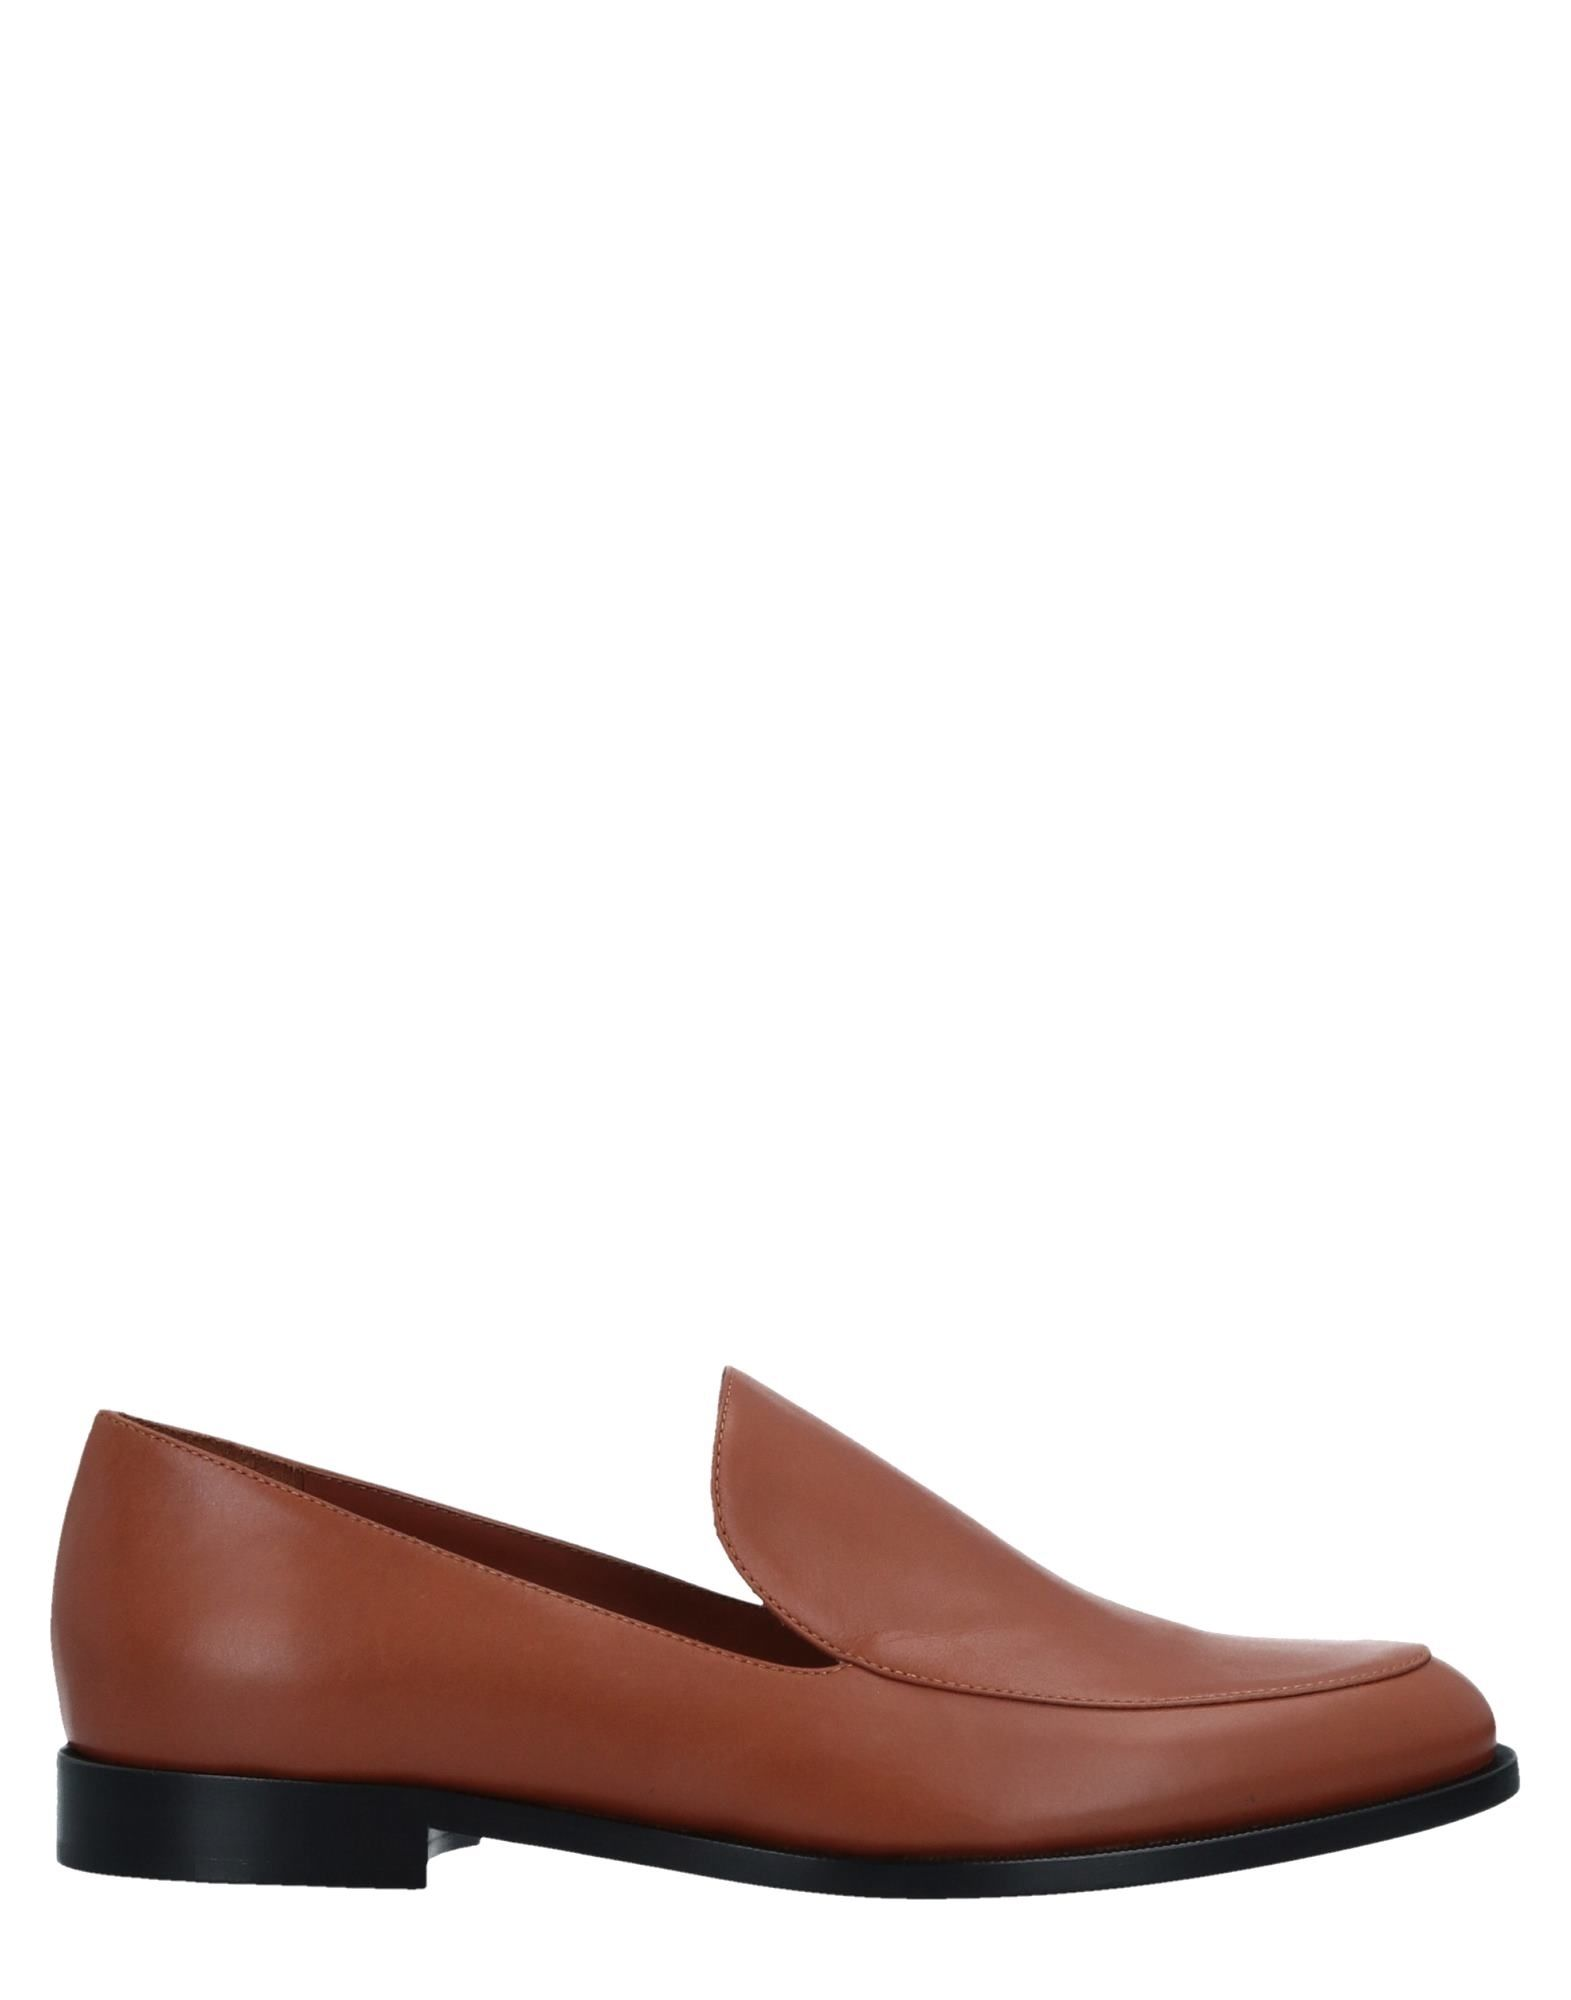 LERRE Loafers in Brown